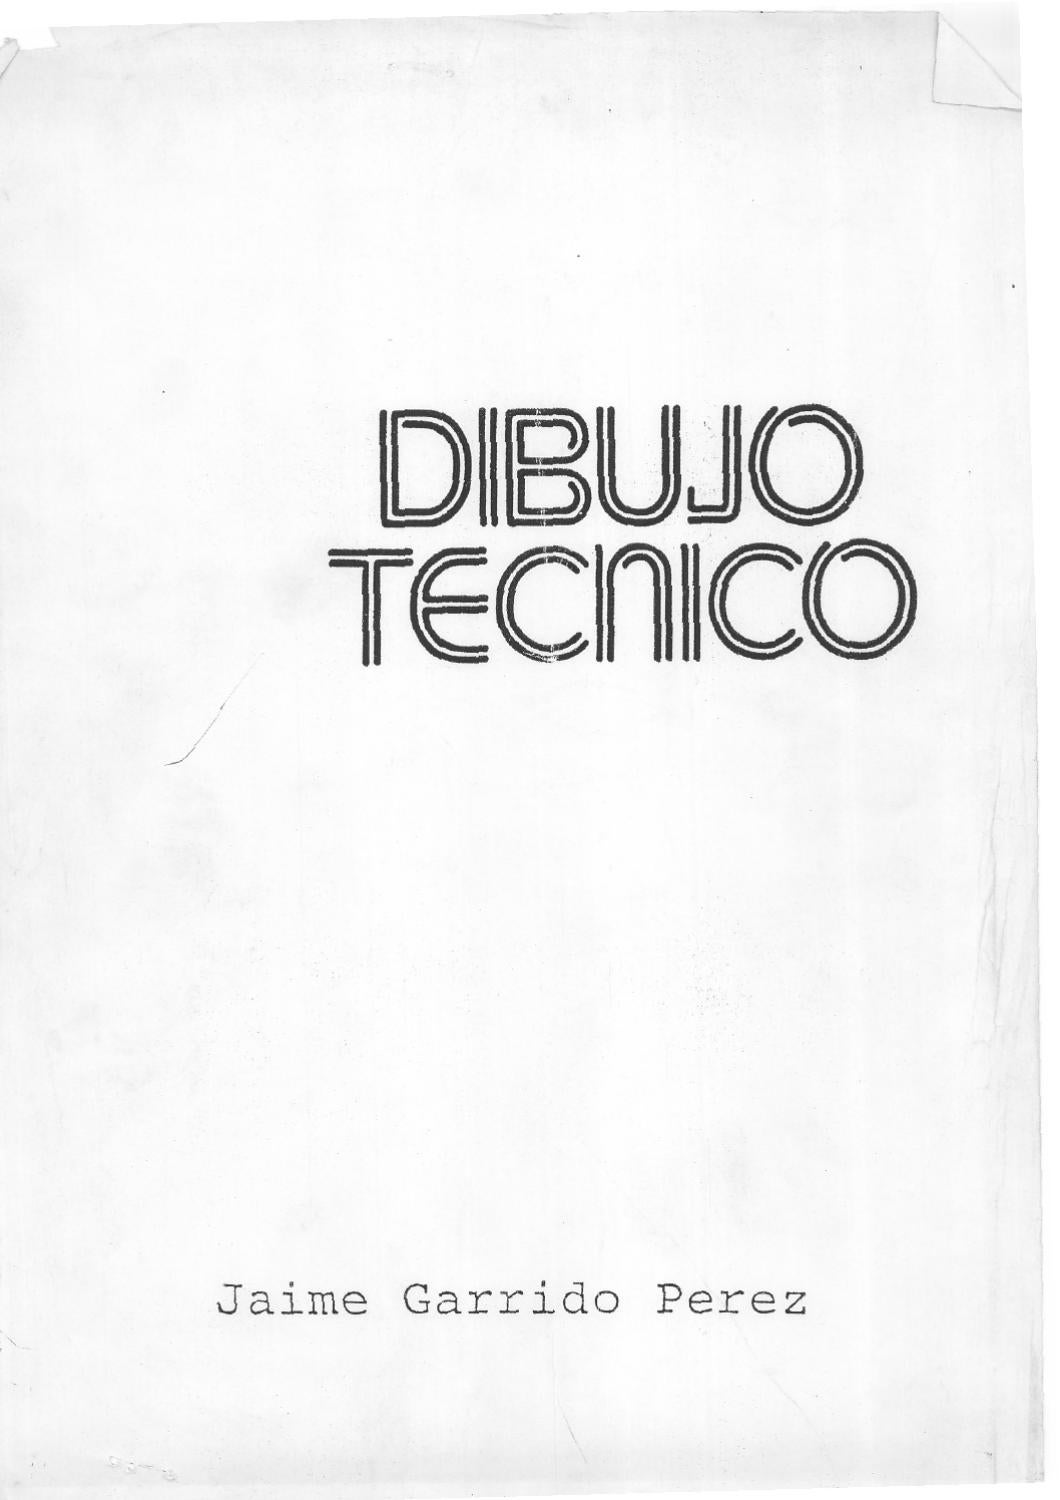 Jaime Garrido Libros Manual Dt By Dibujo TÉcnico Issuu